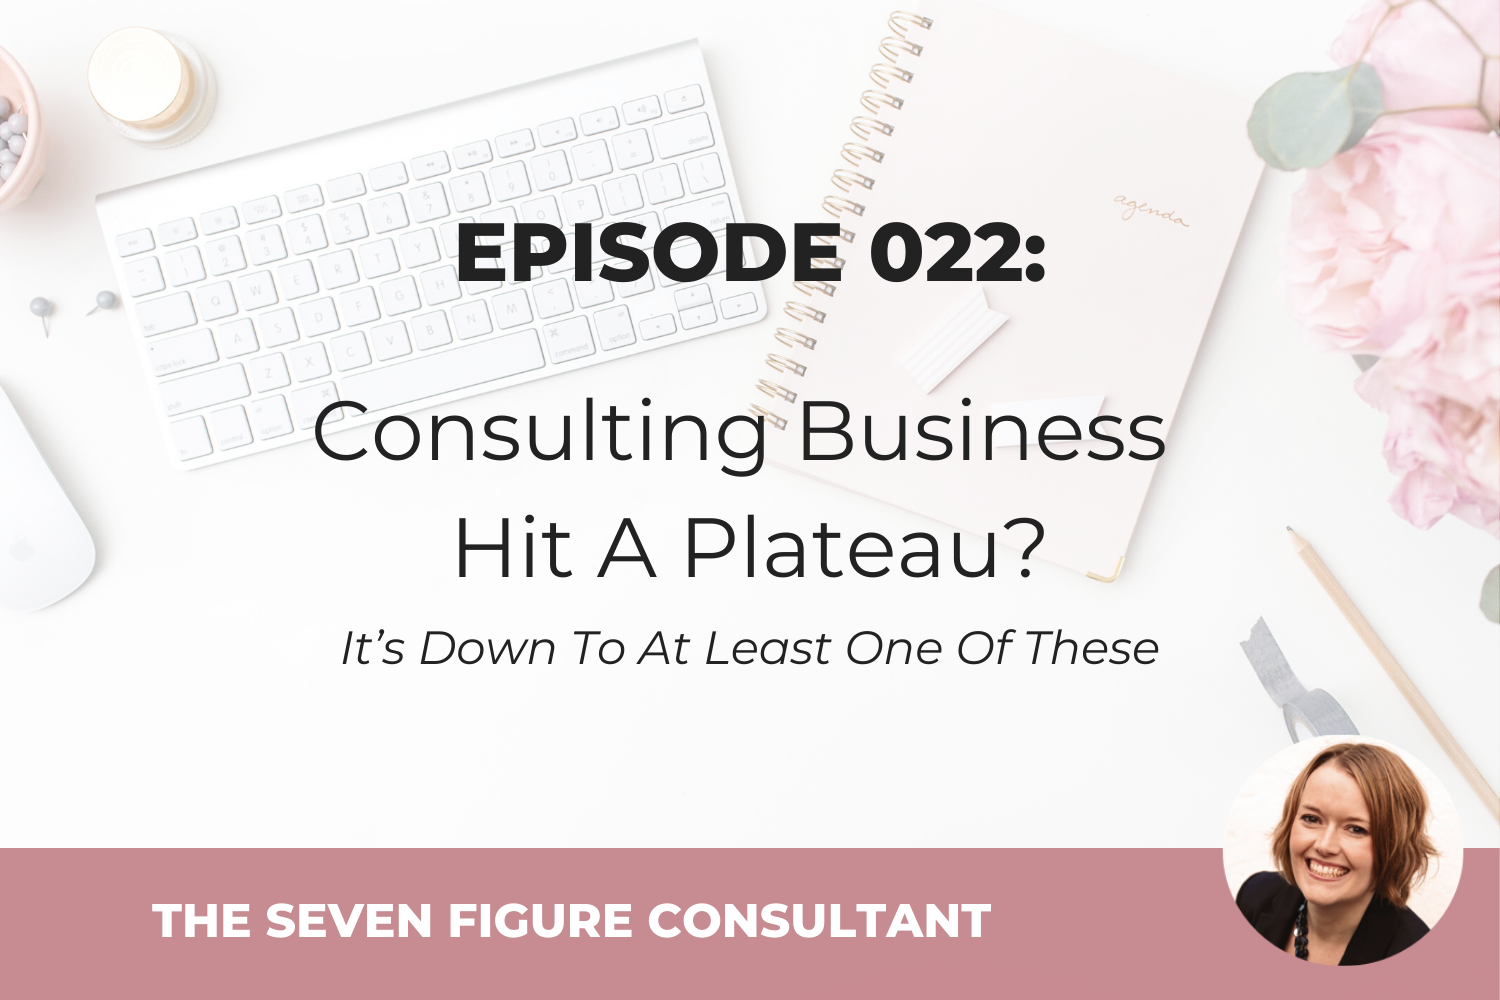 You are currently viewing Episode 022: Consulting Business Hit A Plateau? It's Down To At Least One Of These